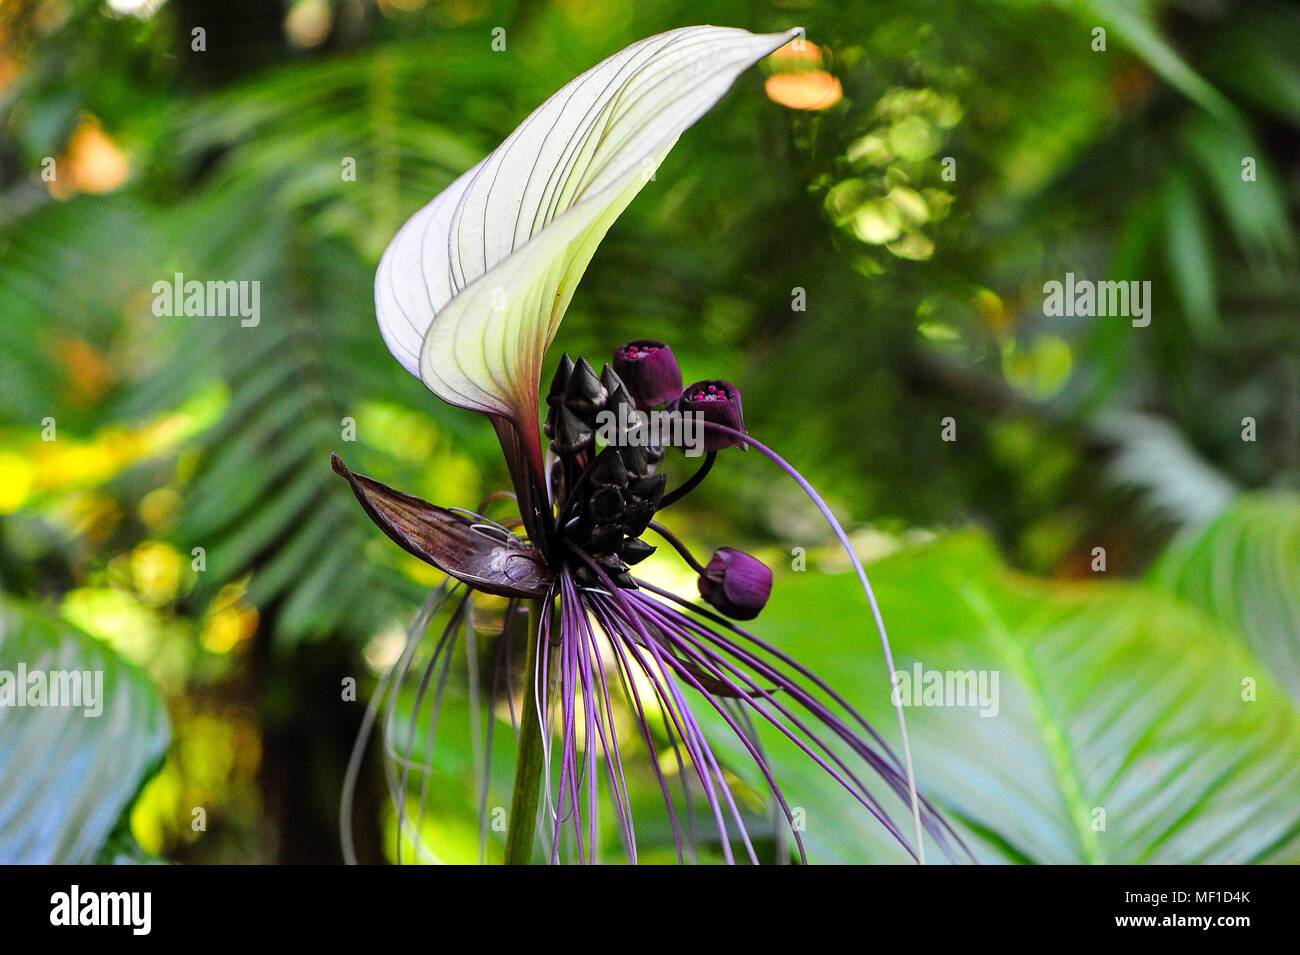 Bat flower tacca integrifolia stock photos bat flower tacca white batflower tacca integrifolia nicknamed cats whiskers exotic white flower mightylinksfo